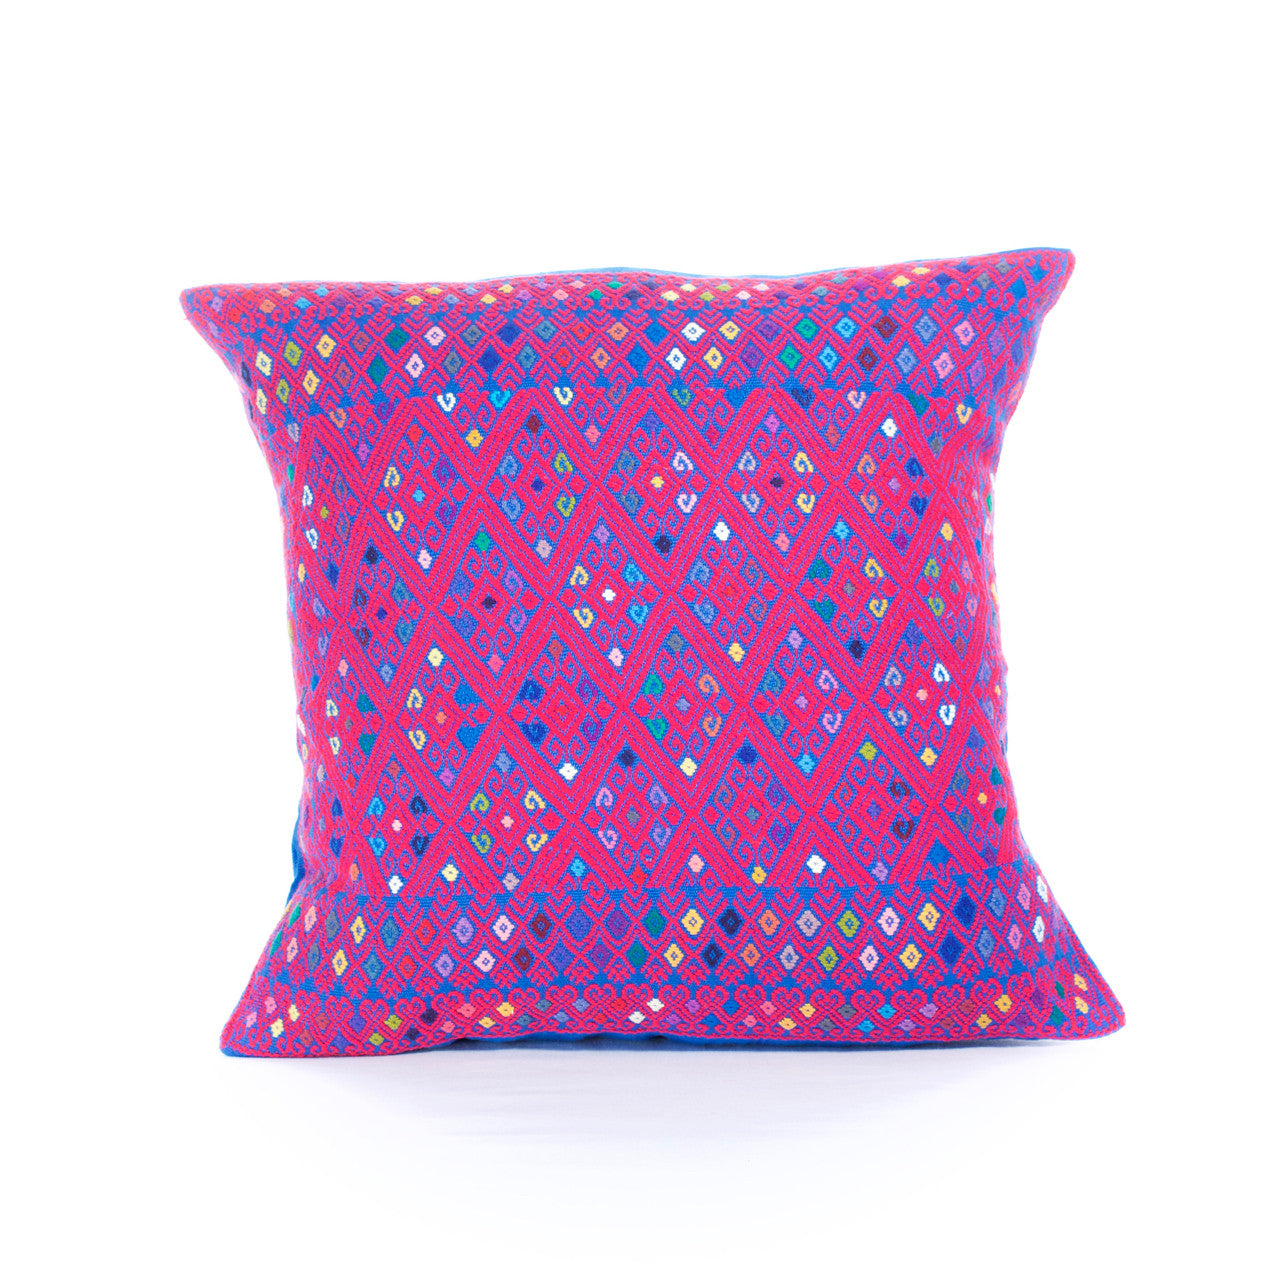 Diamante Cushion 01  Cushion Pink - Cielo Collective handmade Mexico Guatemala